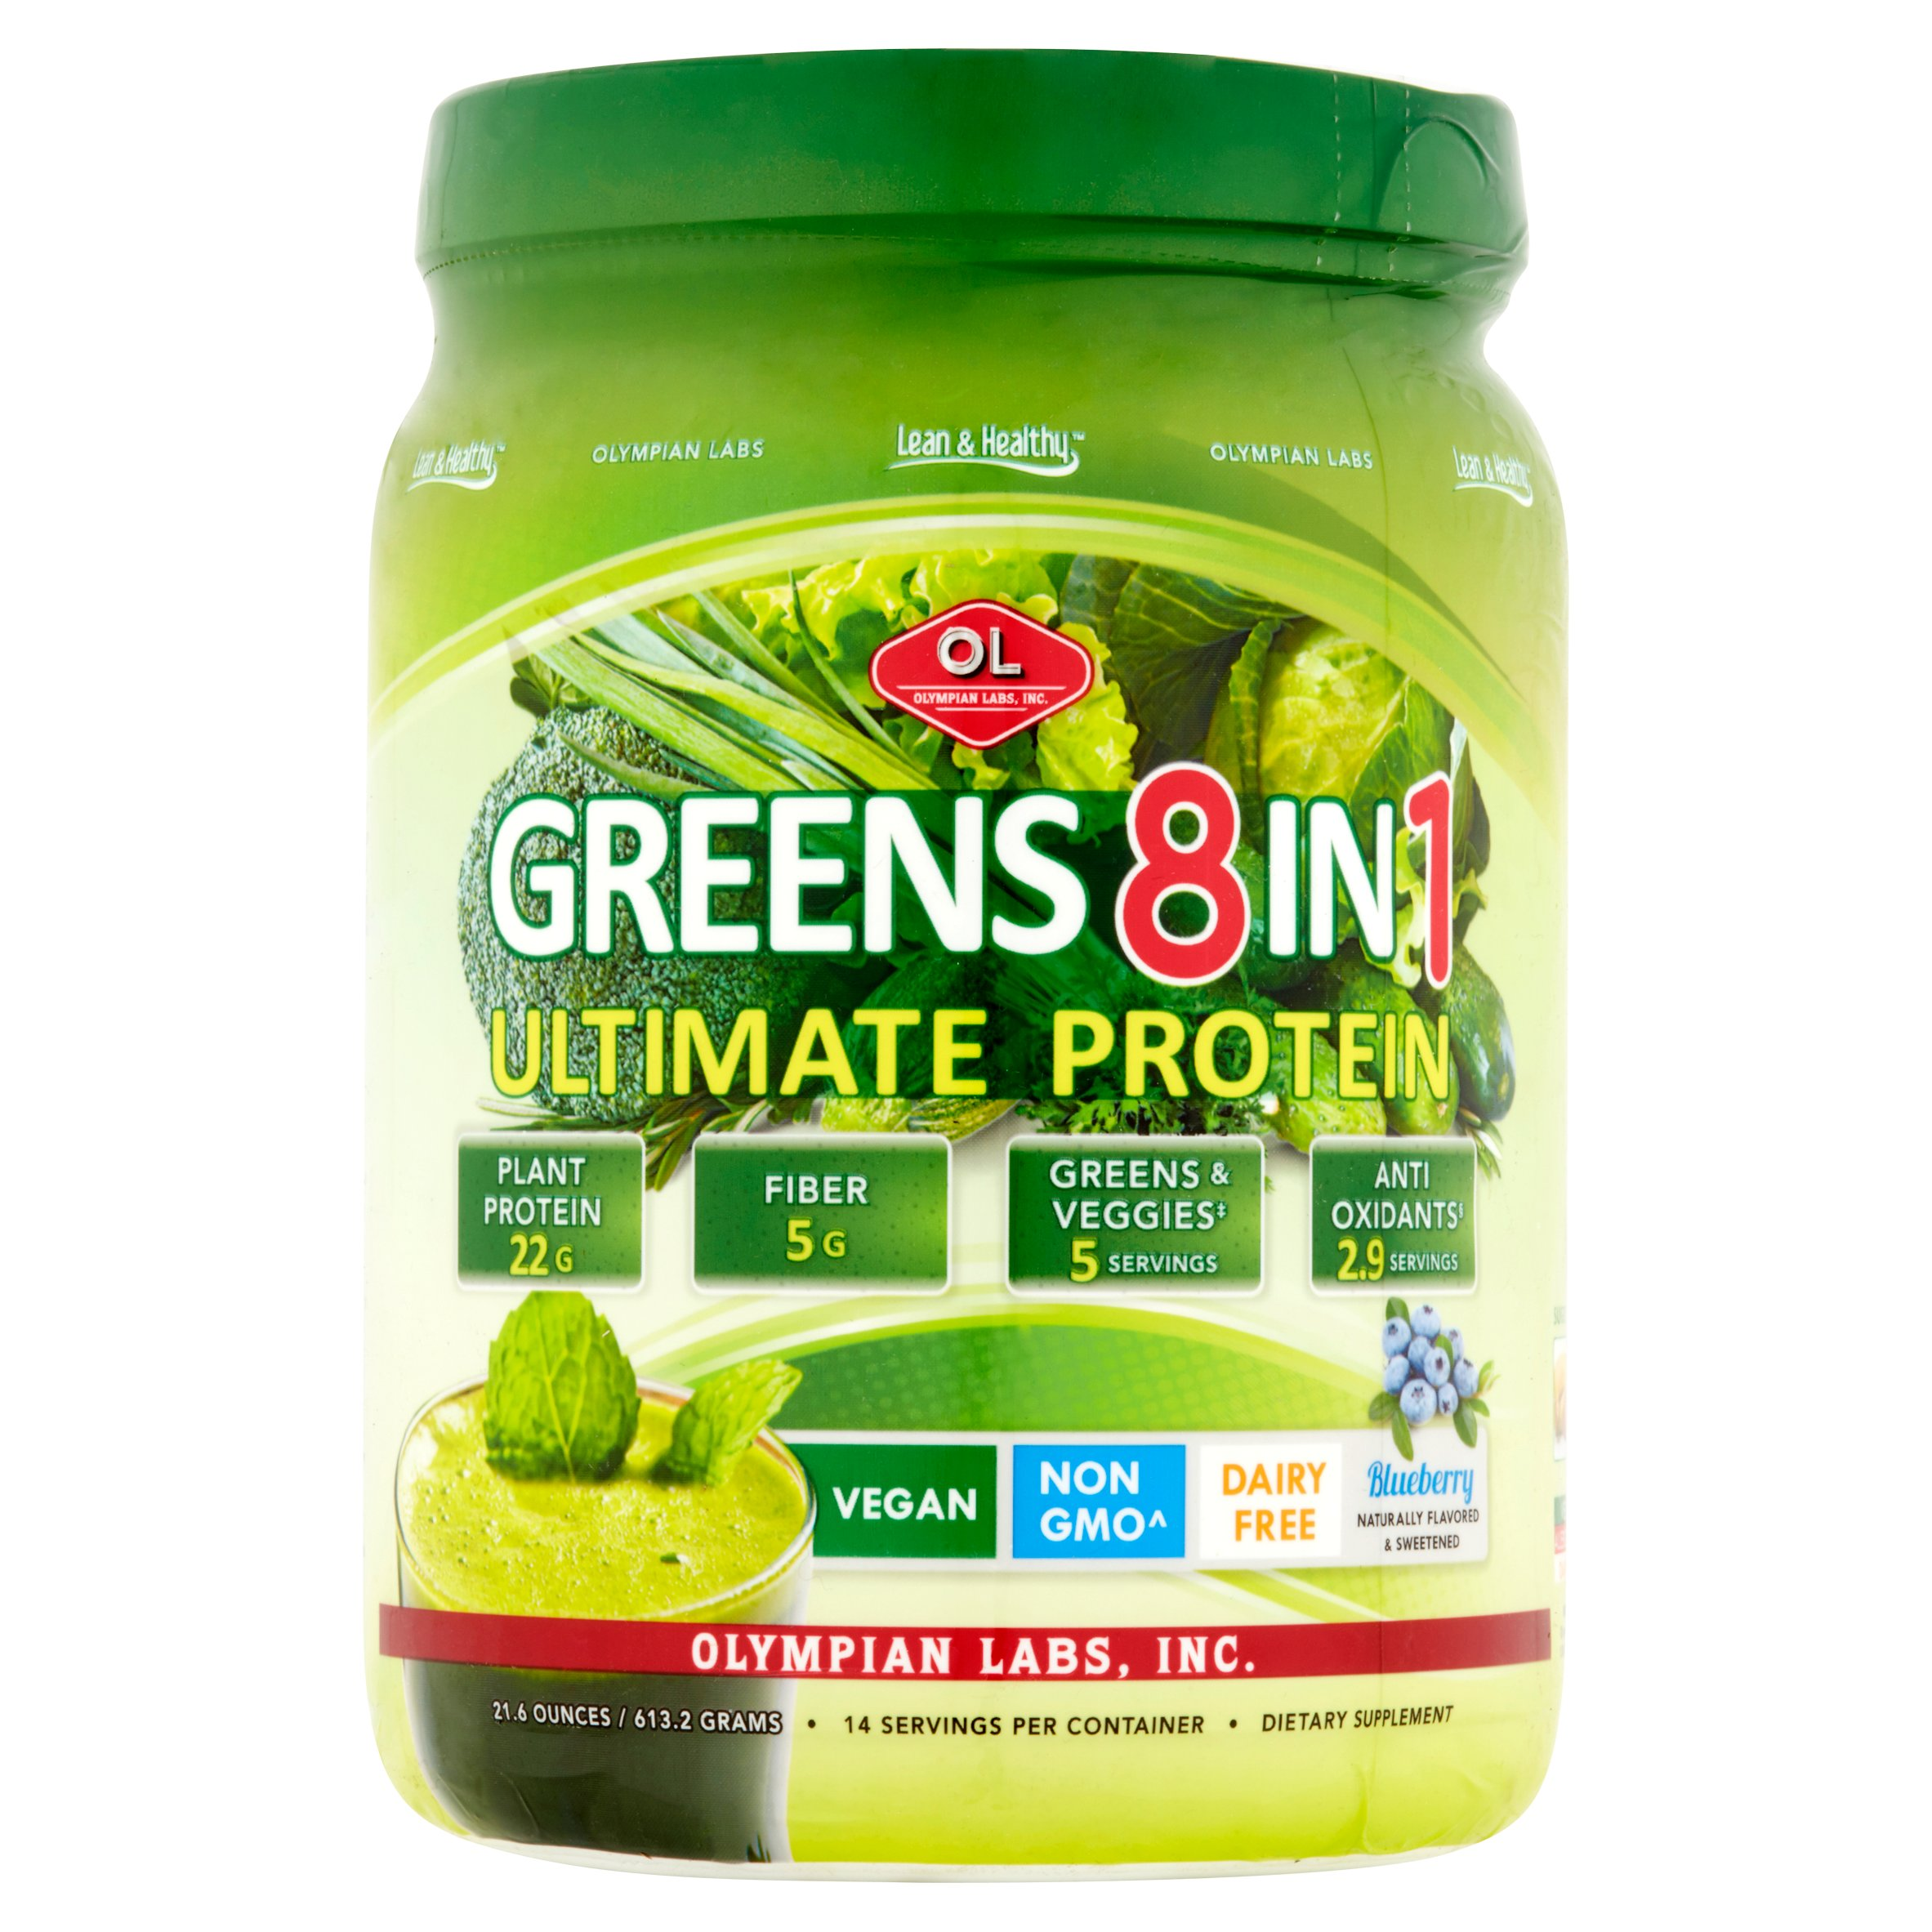 Olympian Labs Greens 8 in 1 Vegan Protein Powder, Blueberry, 22g Protein, 1.4 Lb